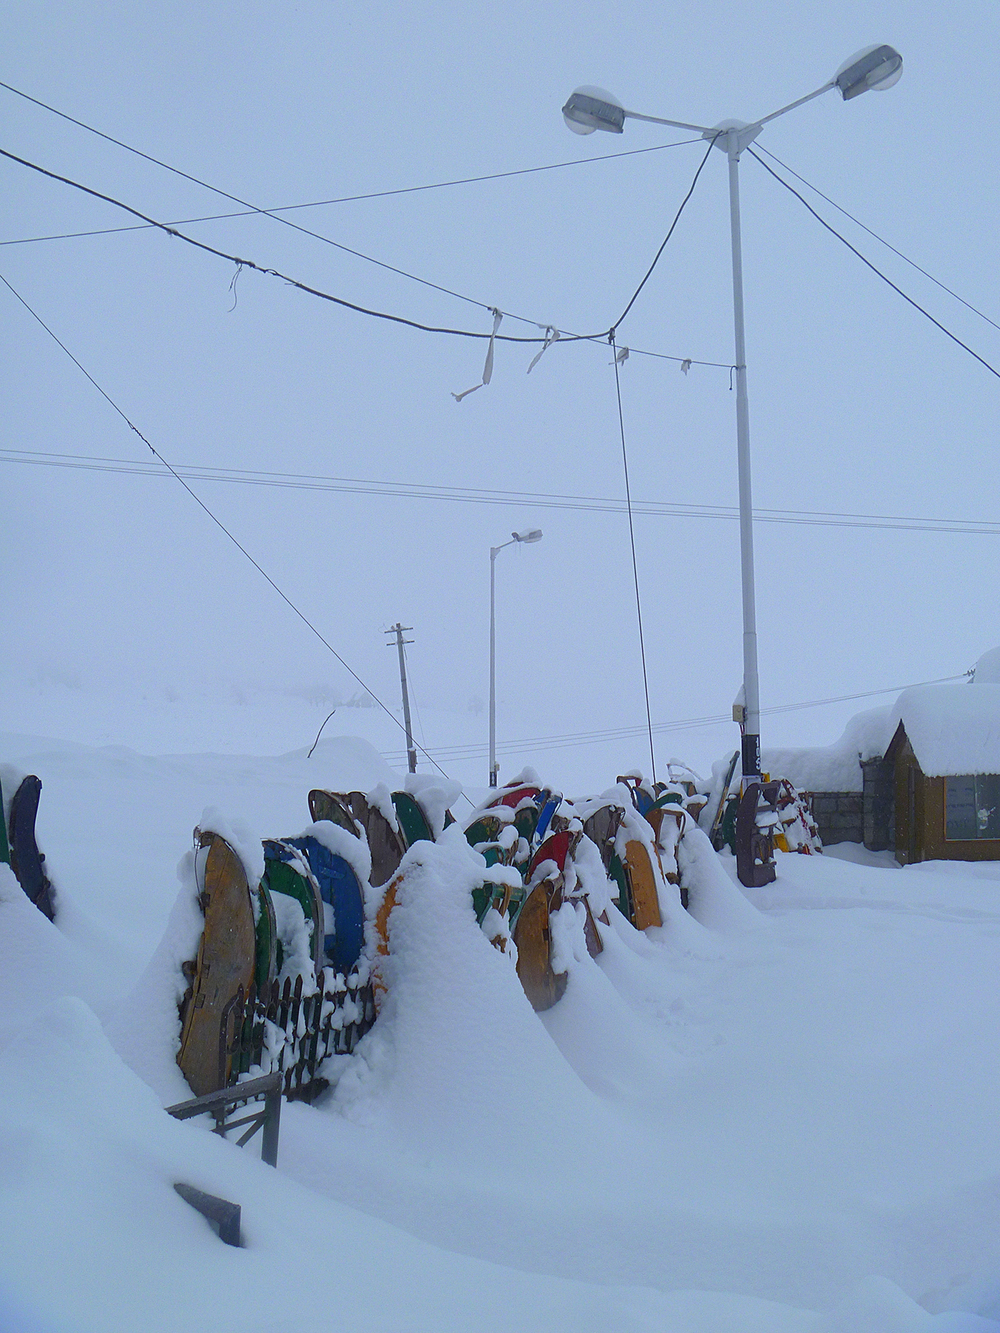 Hopefully the entrance to Gulmarg looks like this upon your arrival.